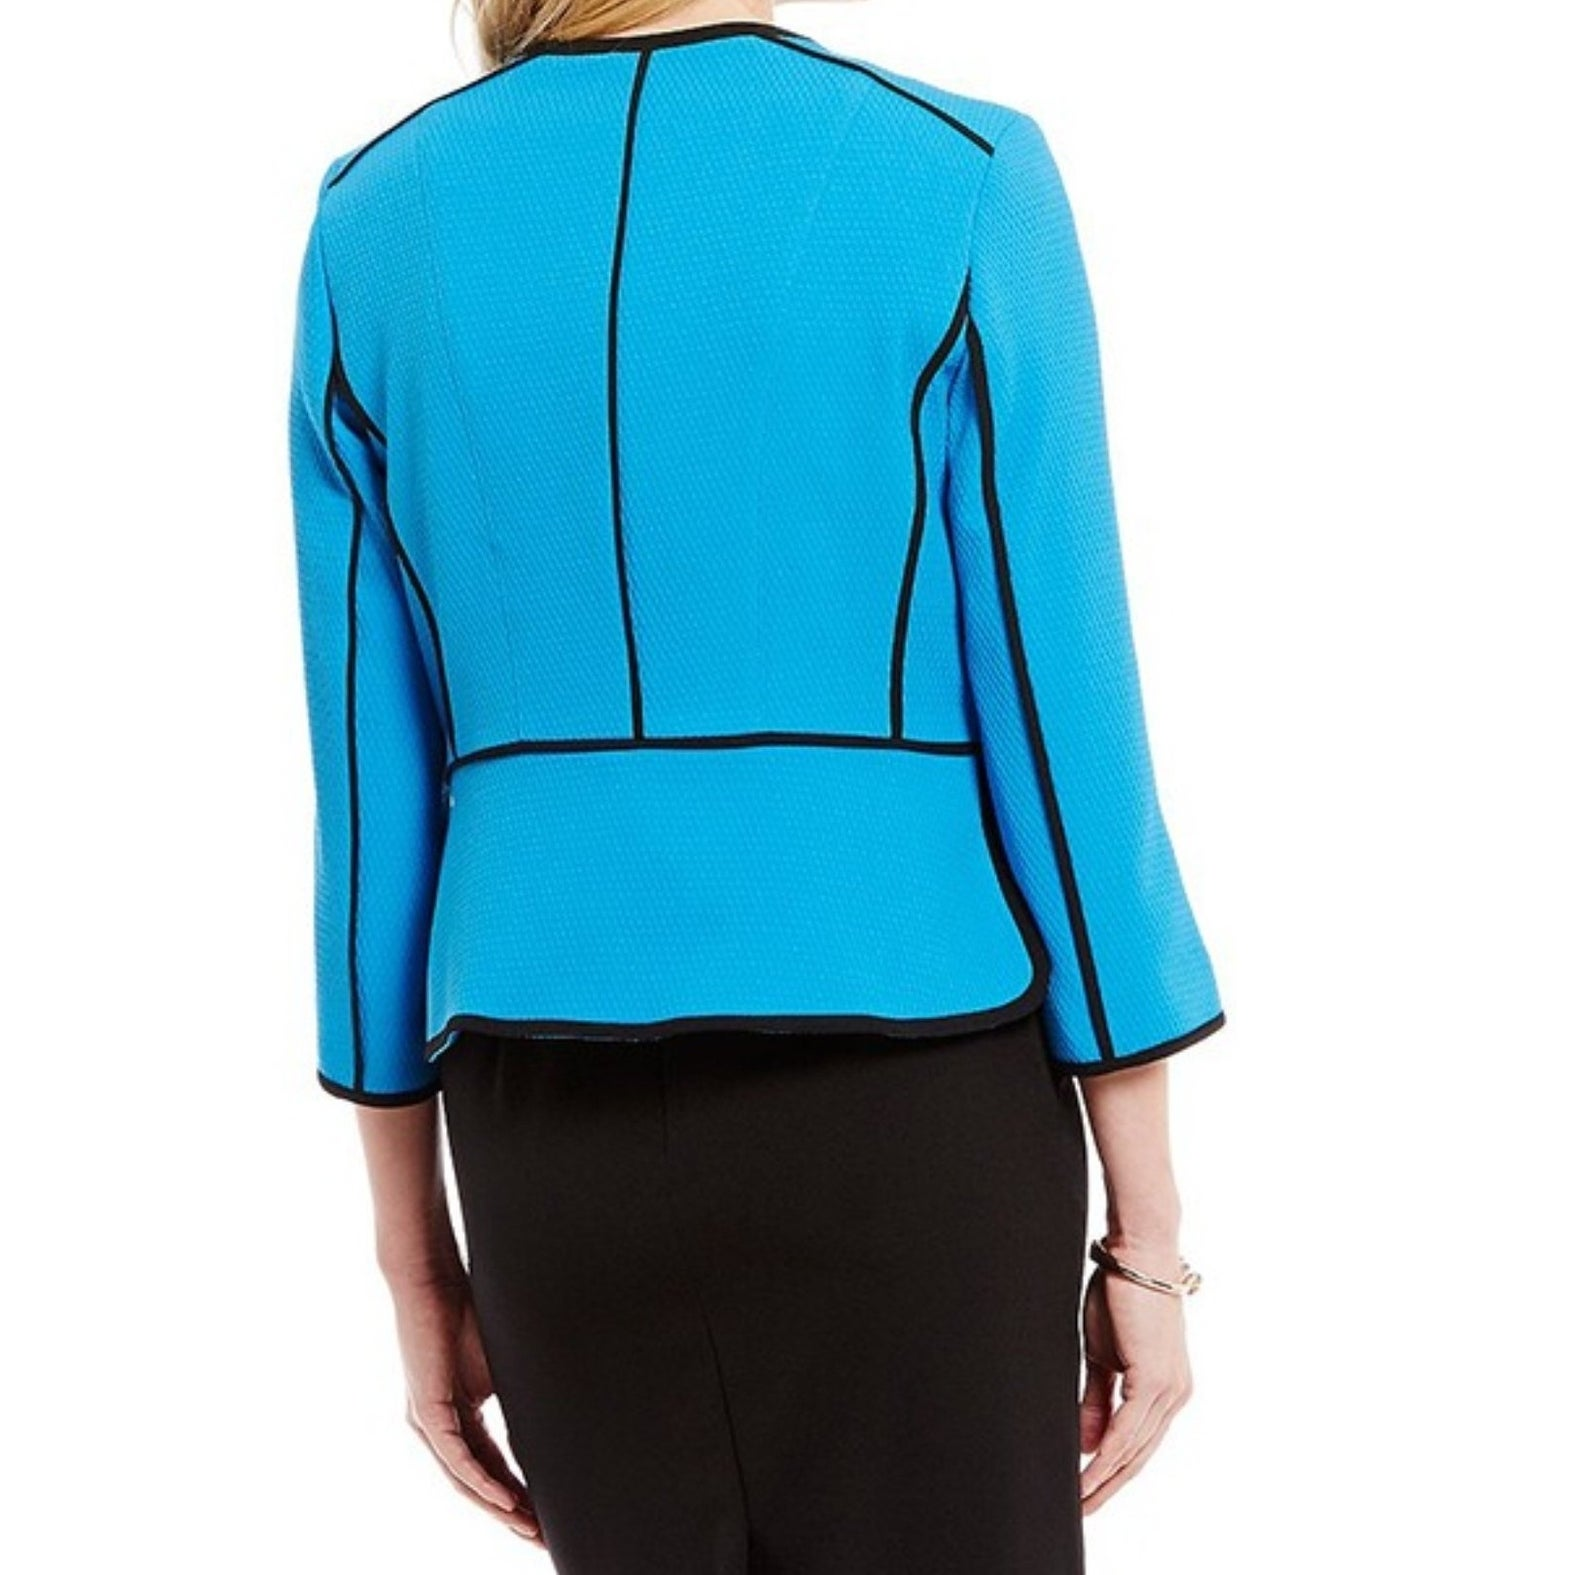 821a71cc Shop Kasper NEW Azure Blue Black Piped Women's Size 8 Zip Front Jacket -  Free Shipping Today - Overstock - 20719414